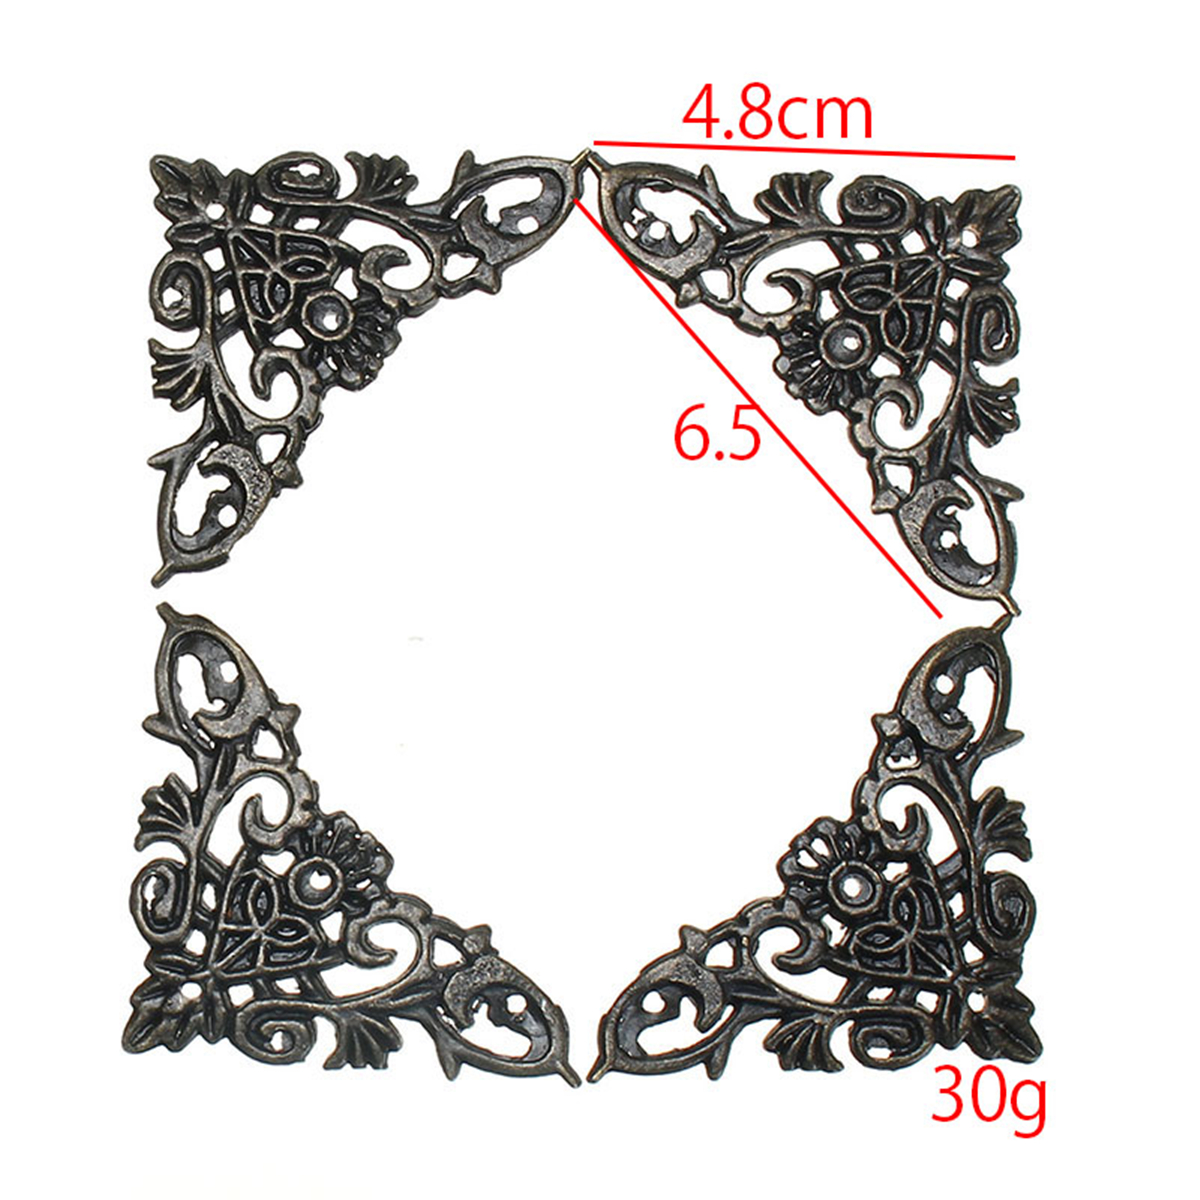 4Pcs Antique Brass Corner Protection Jewelry Gift Box Wood Case Butterfly Copper Feet Legs